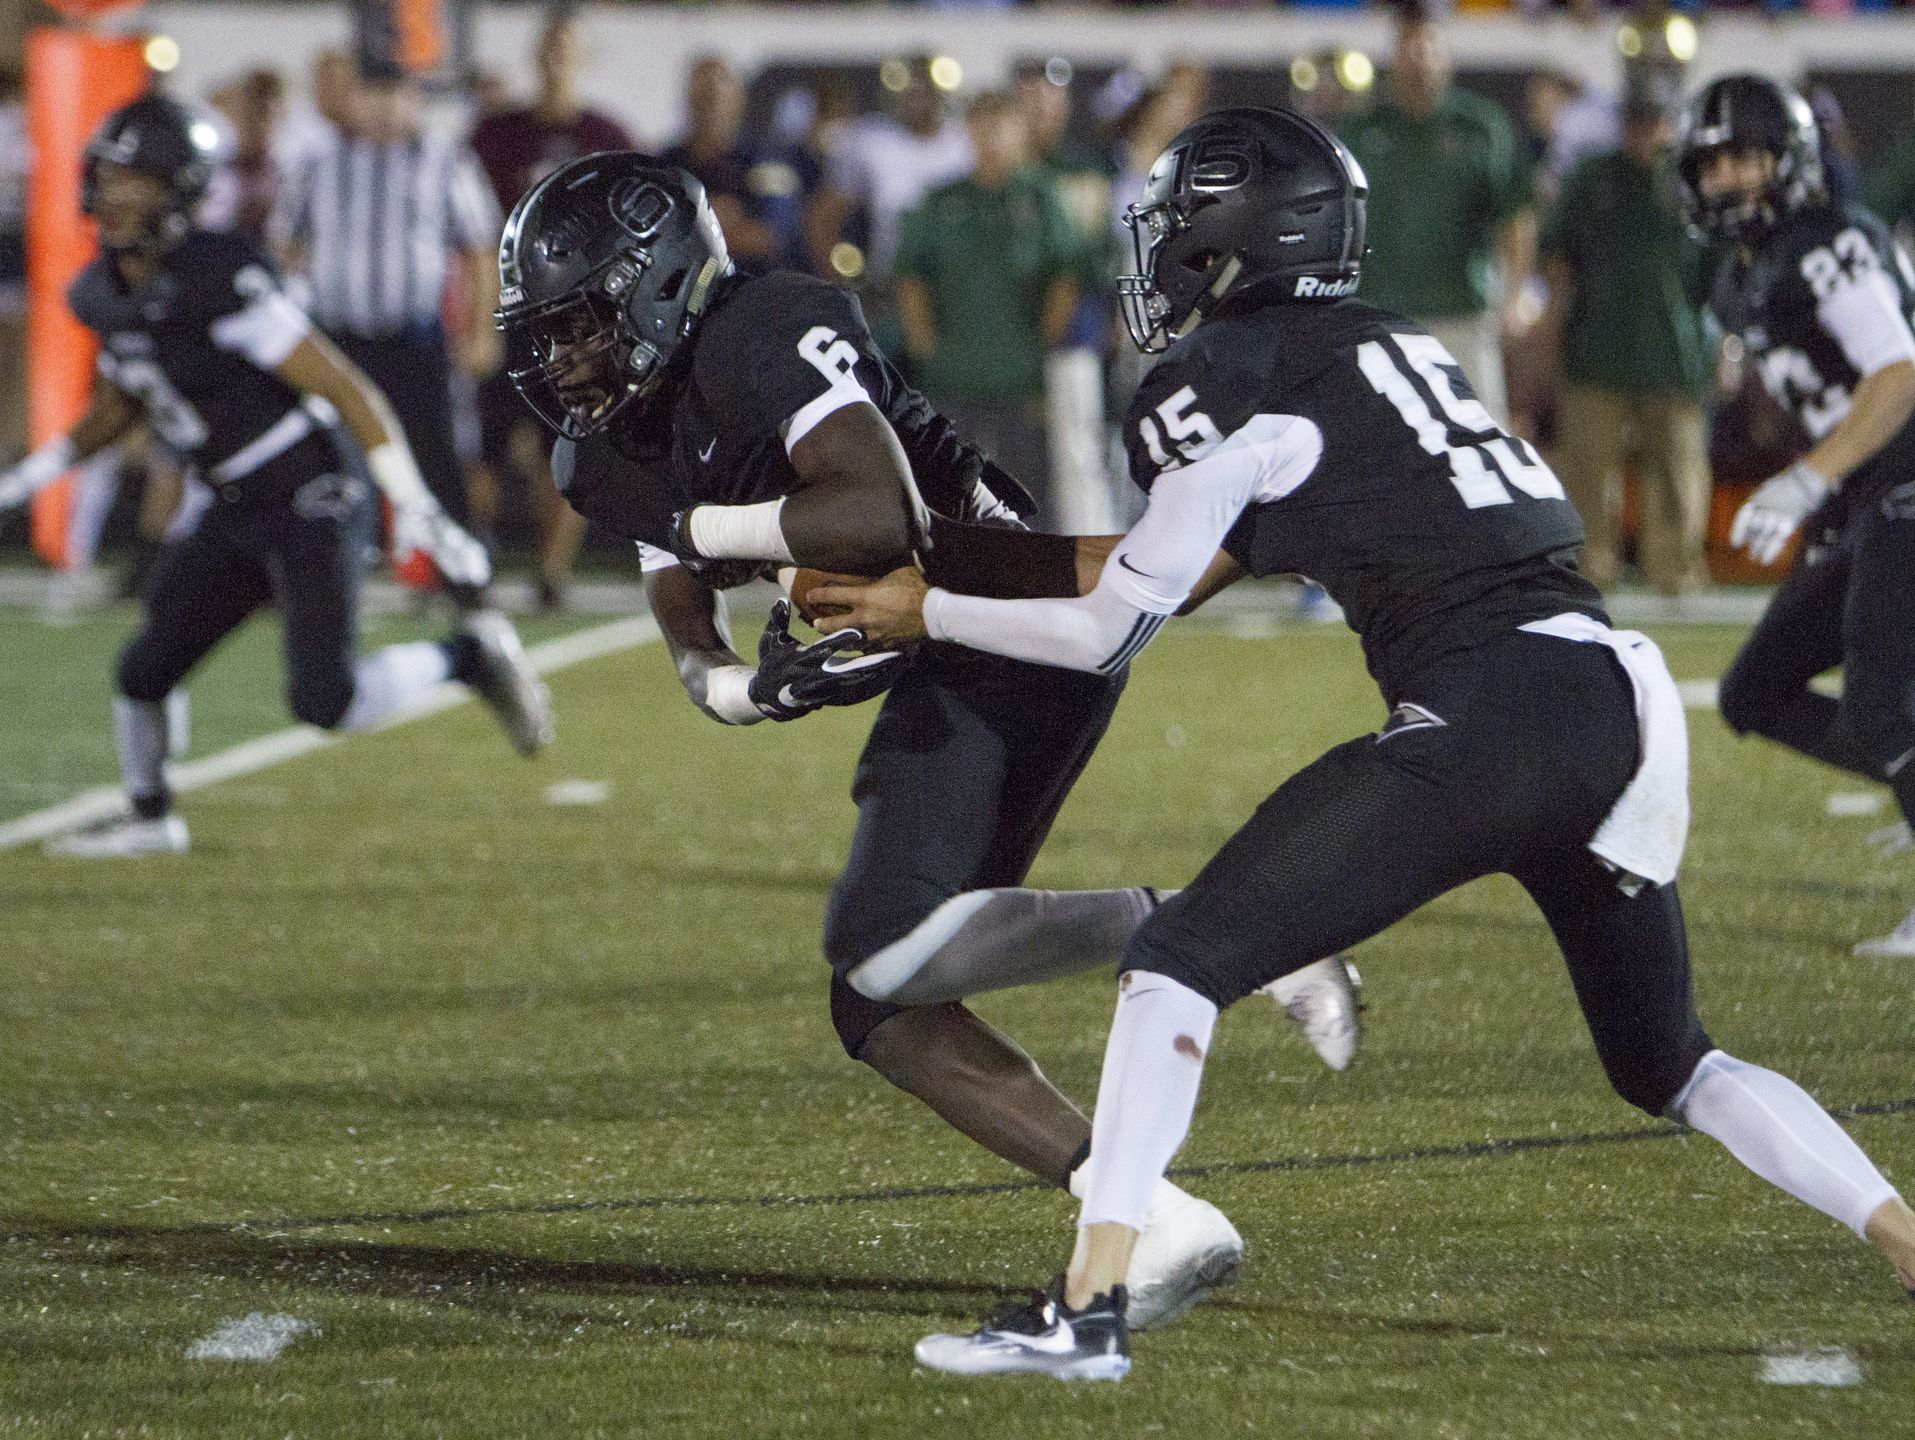 After a long journey, Jacob (No. 6) and D'Angelo Mpungi now call St. George home. Since arriving, the brothers have made a huge impact on the Pine View football team.